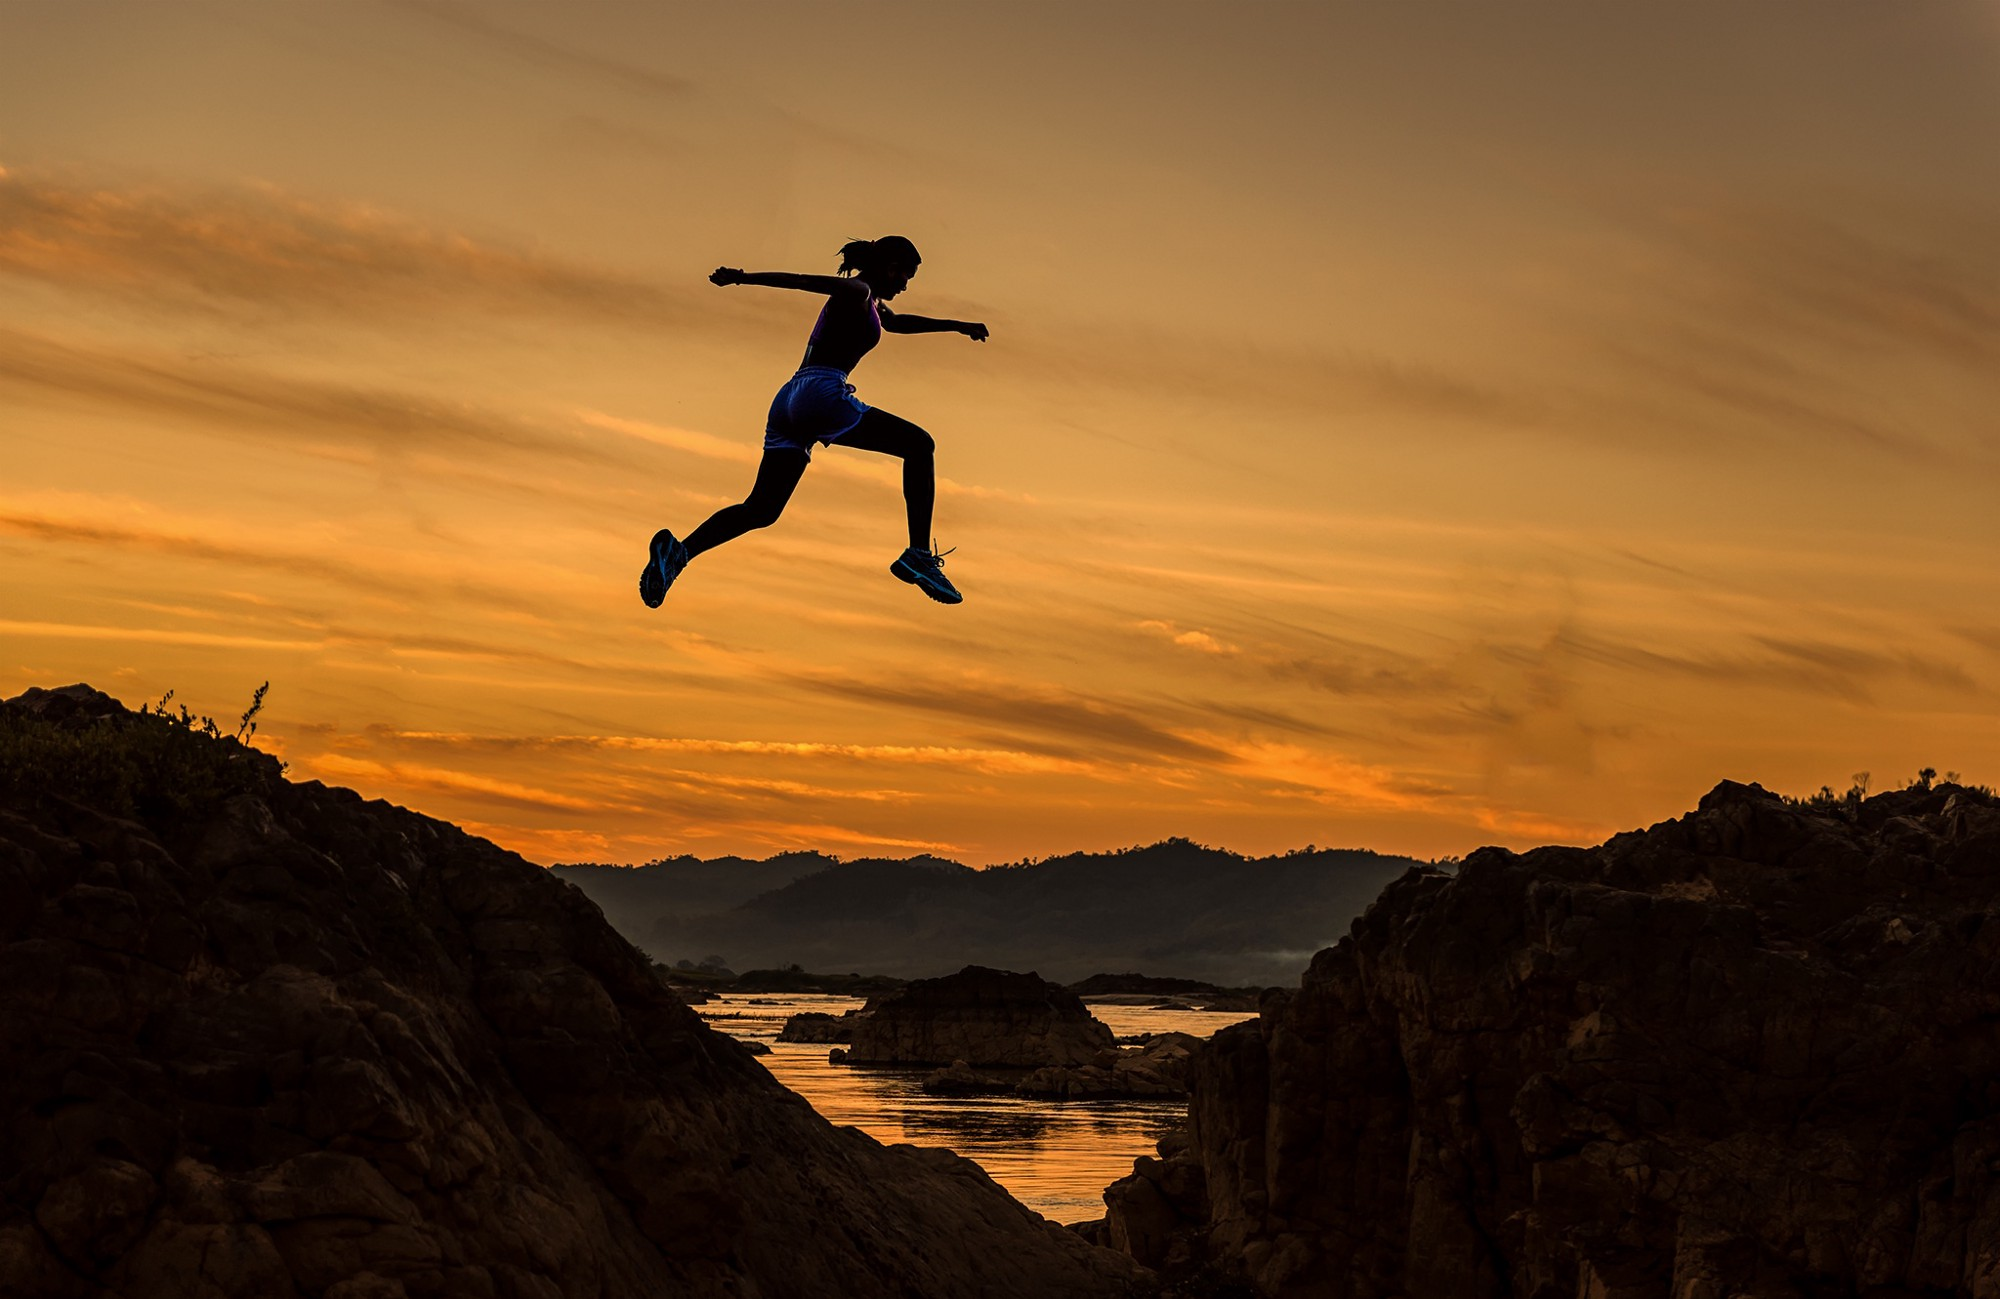 Woman jumping high between two hills, silhouetted against a sunset.